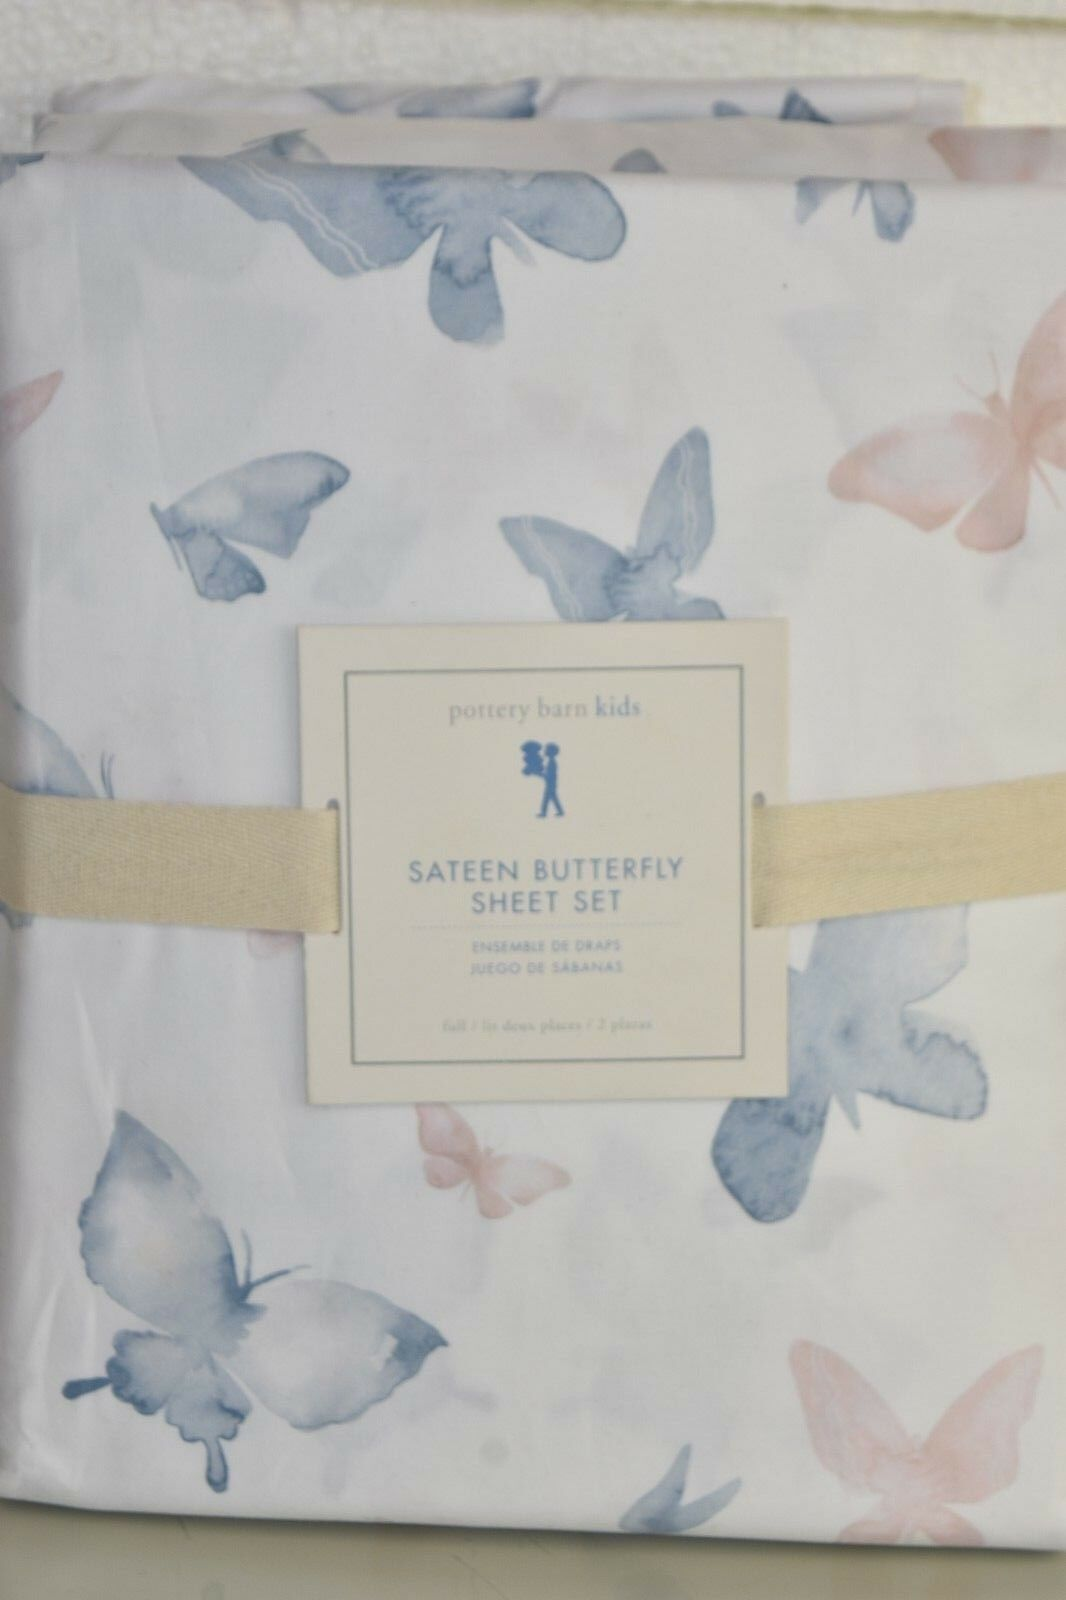 NEW Pottery Barn Kids SATEEN BUTTERFLY SHEET SET 4 PC White blueeeee Pink FULL